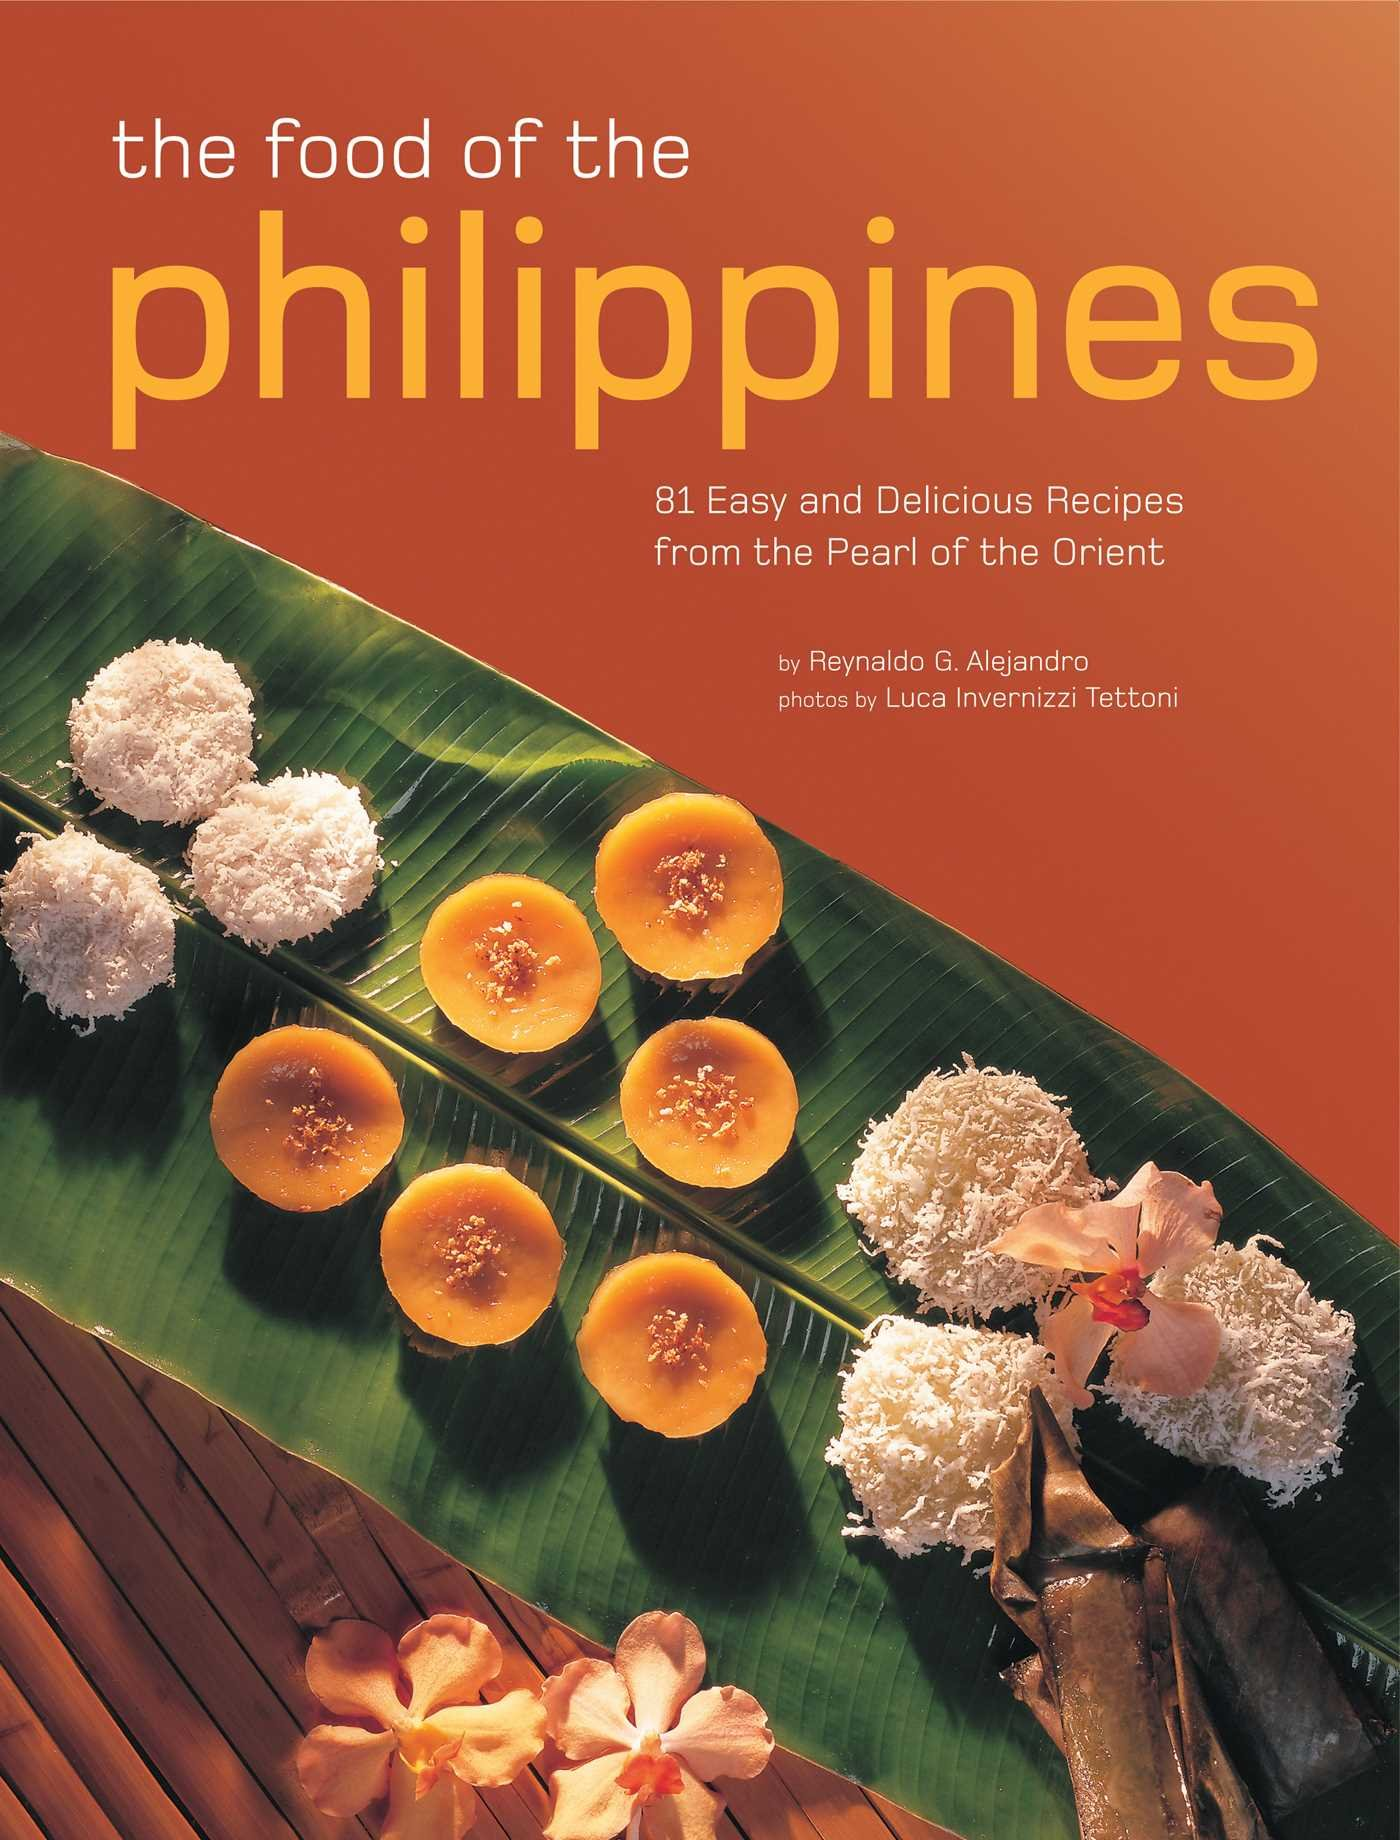 The Food of the Philippines 81 Easy and Delicious Recipes from